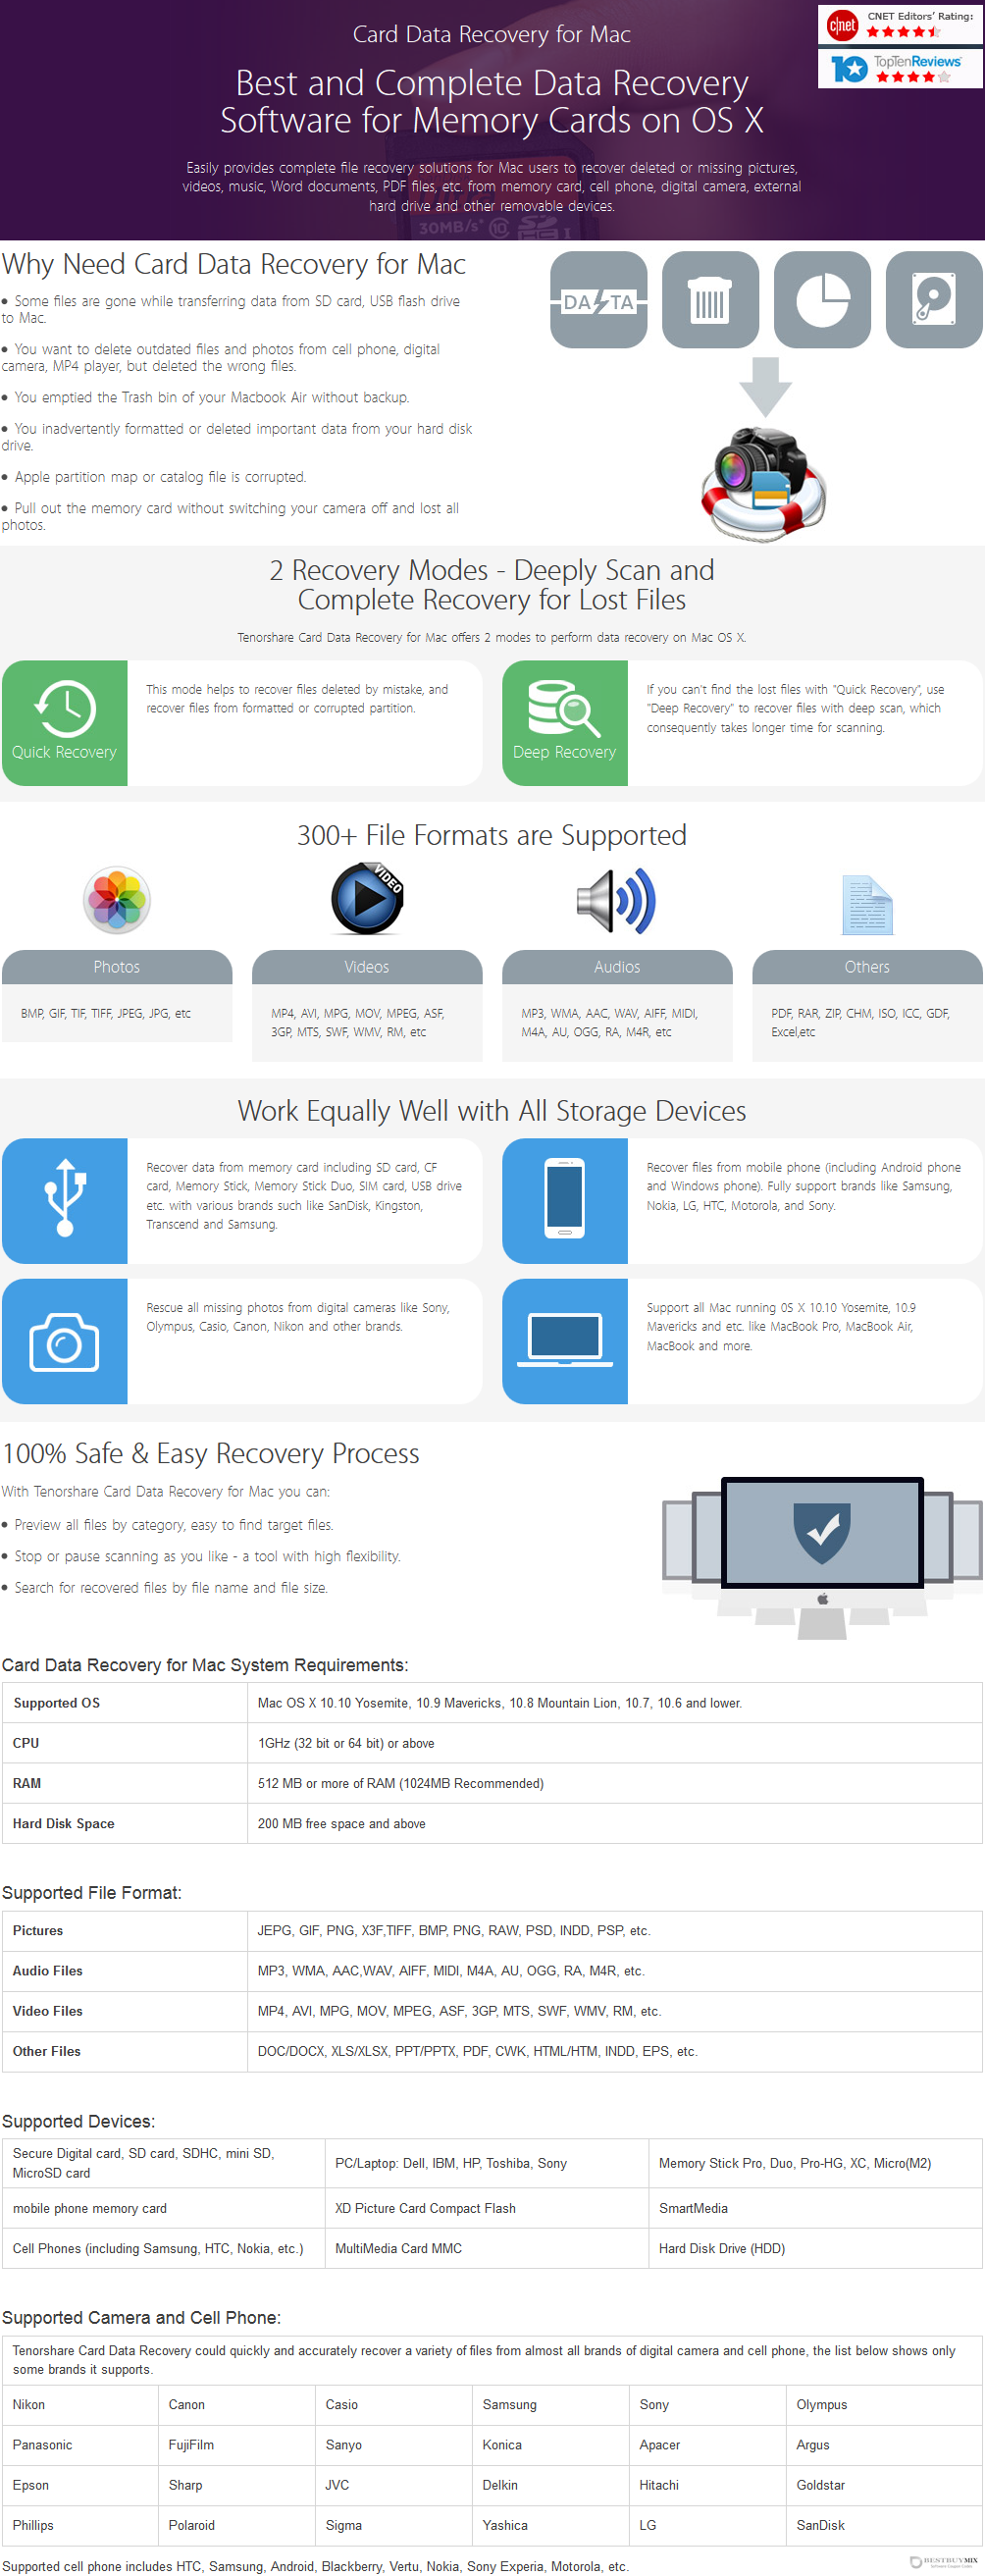 Tenorshare Card Data Recovery for Mac Discount Coupon Code Discount Coupon Code